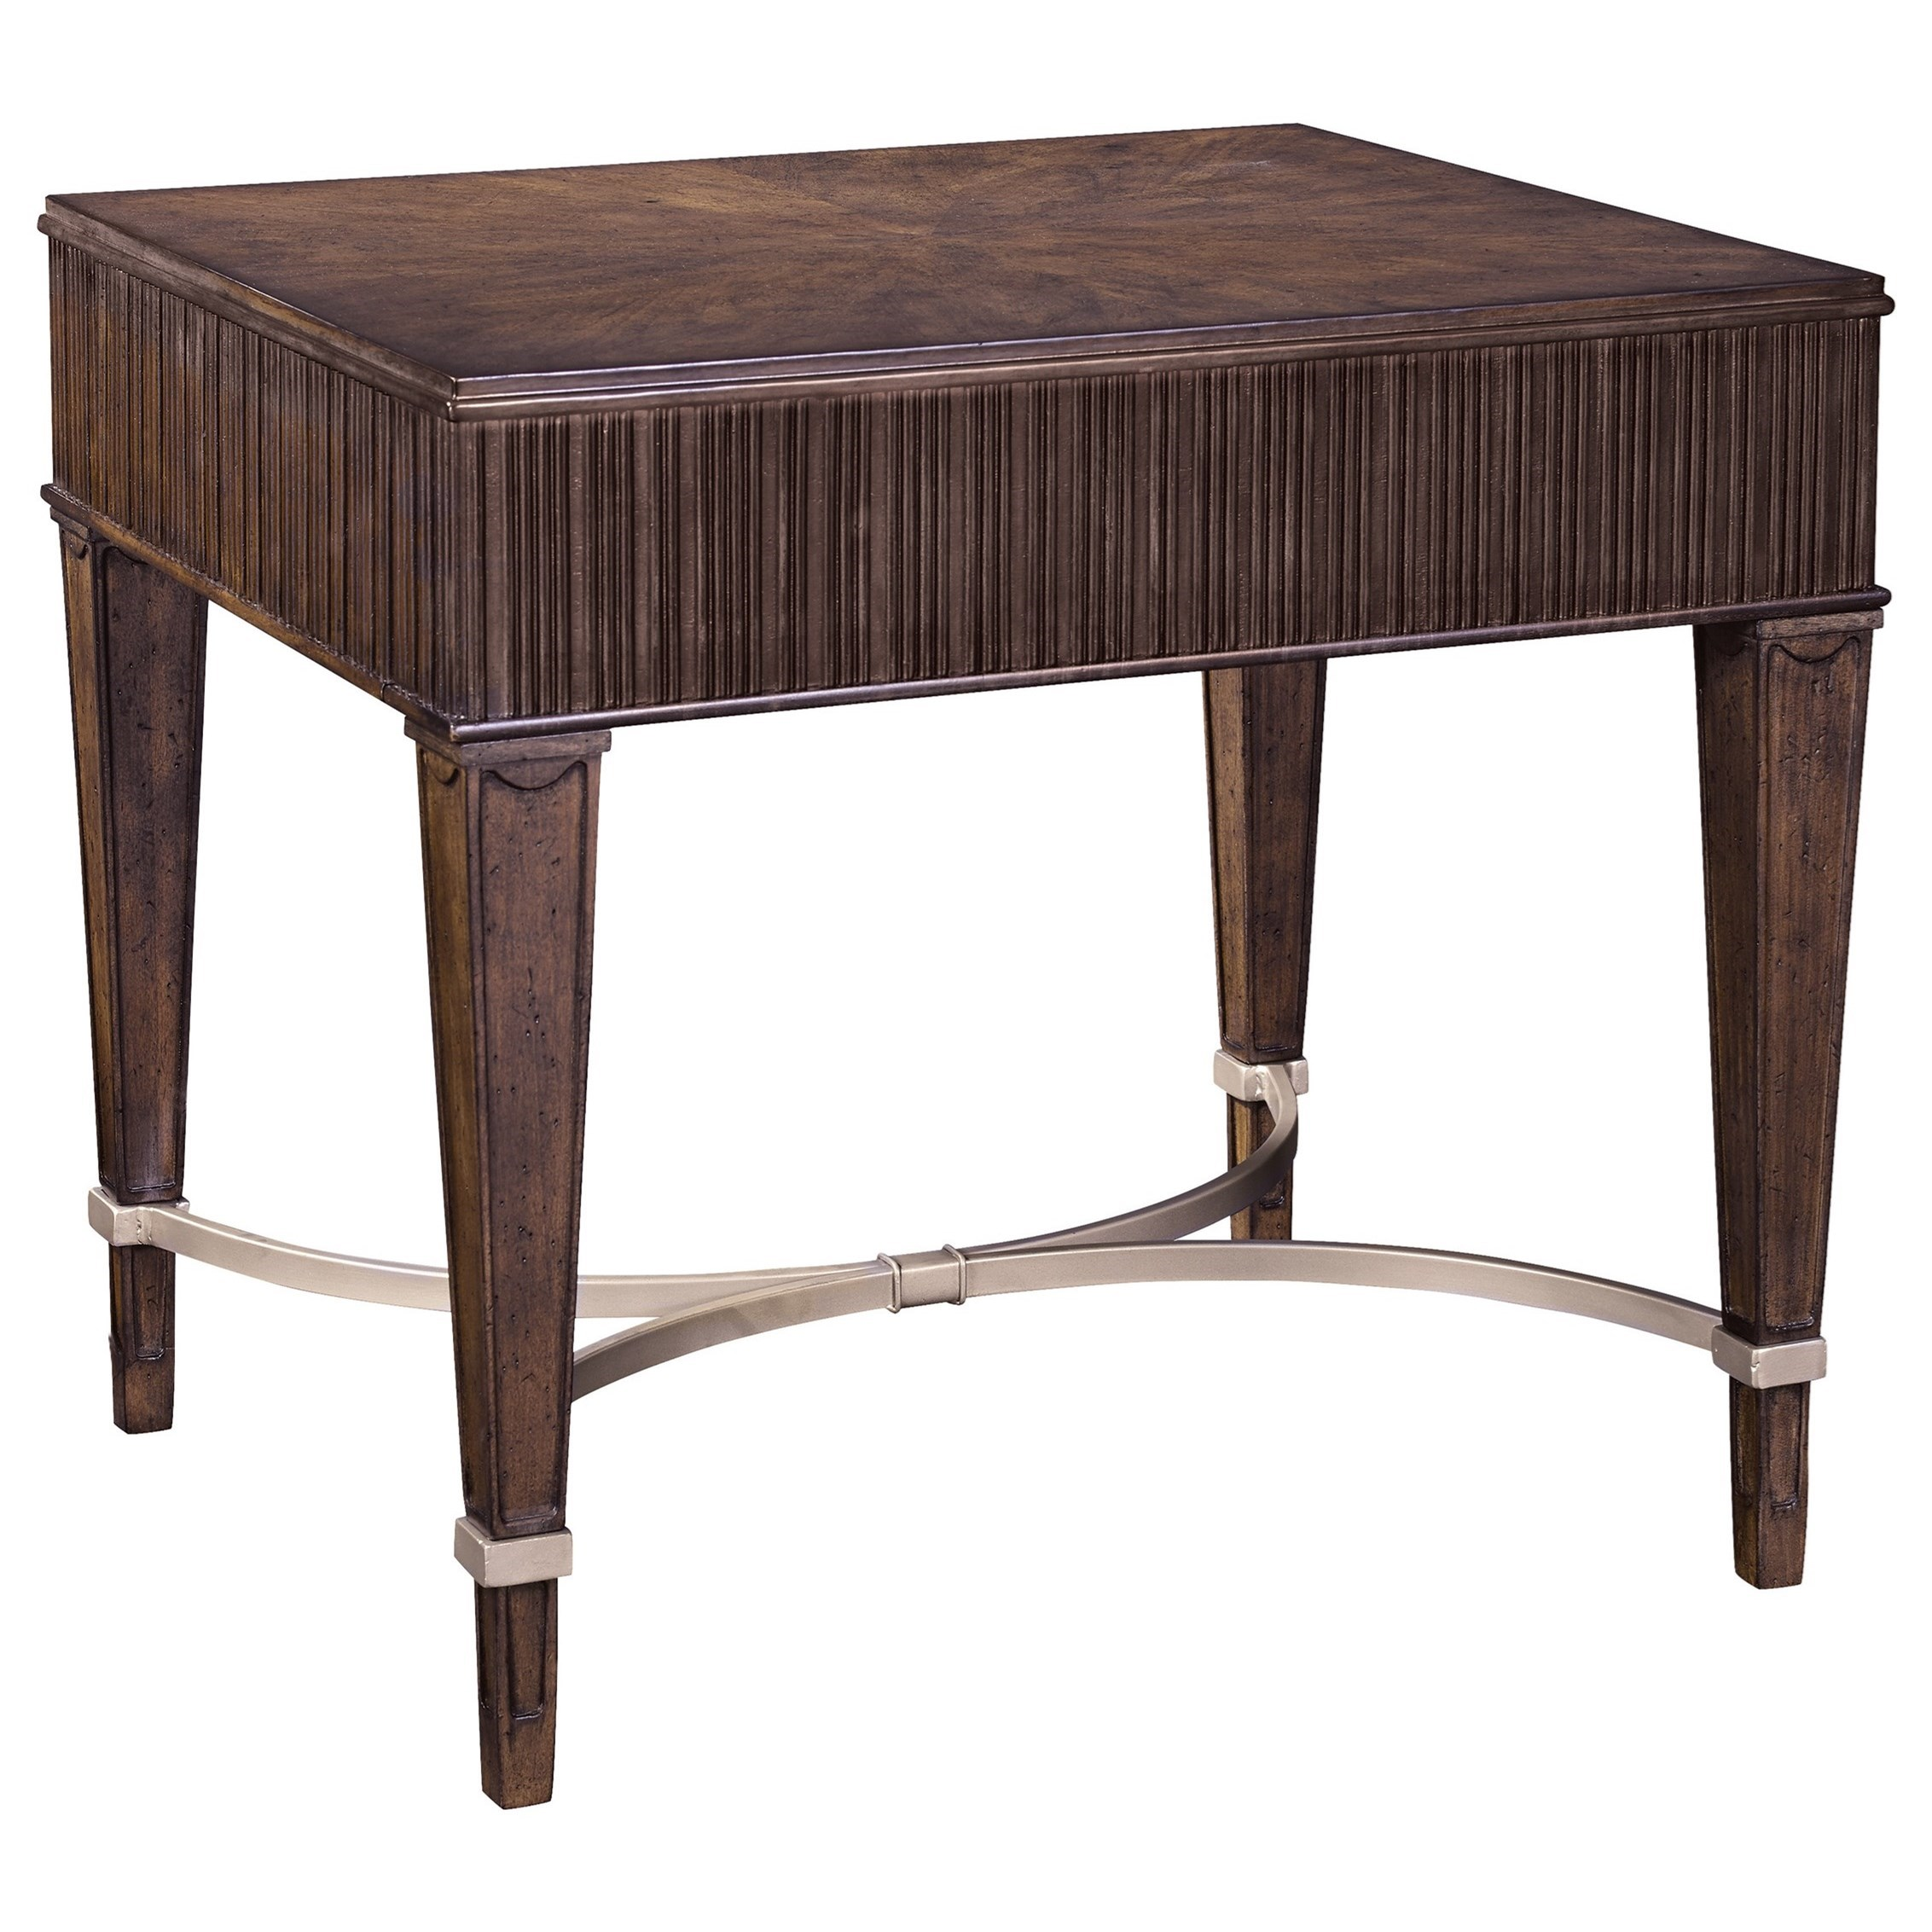 Broyhill Furniture Cashmera End Table - Item Number: 4860-002